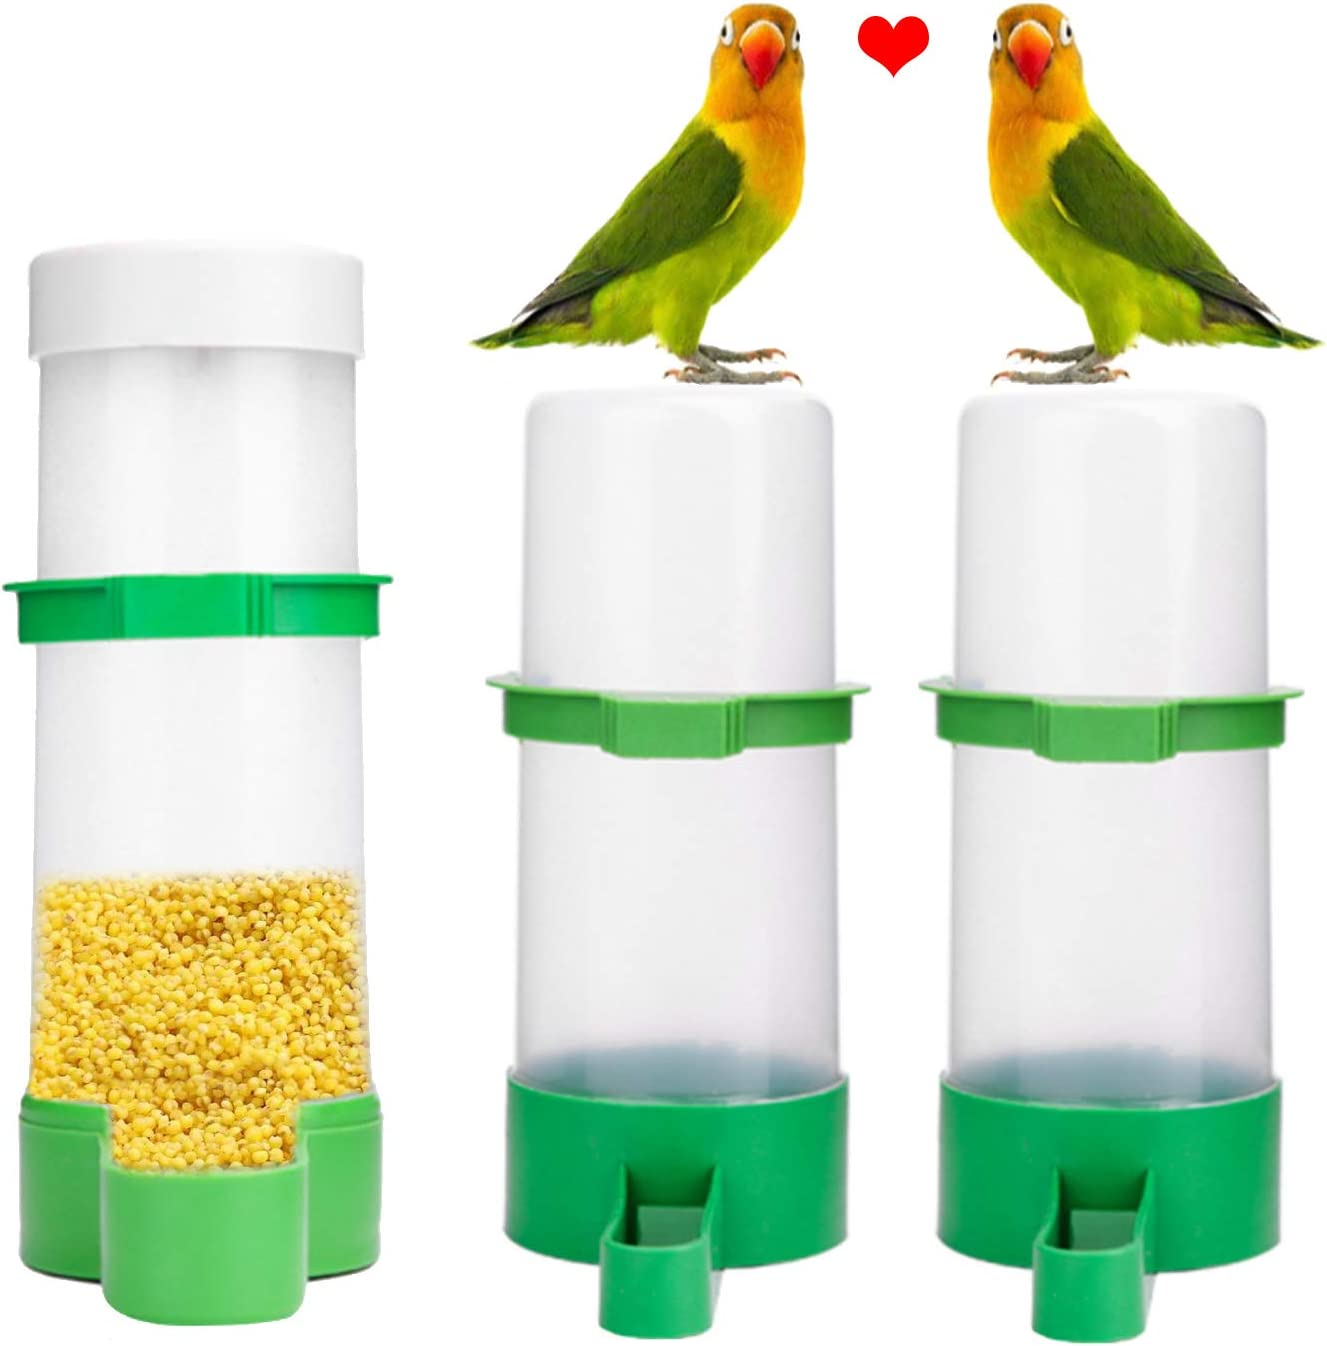 XISTEST Bird Water Feeder, 2PCS Bird Water Bowl with 1PCS Food Feeder for Pet Parrot and Other Birds Budgie Lovebirds Cockatiel Cage (2pcs 140ml + 1pcs 150ml)